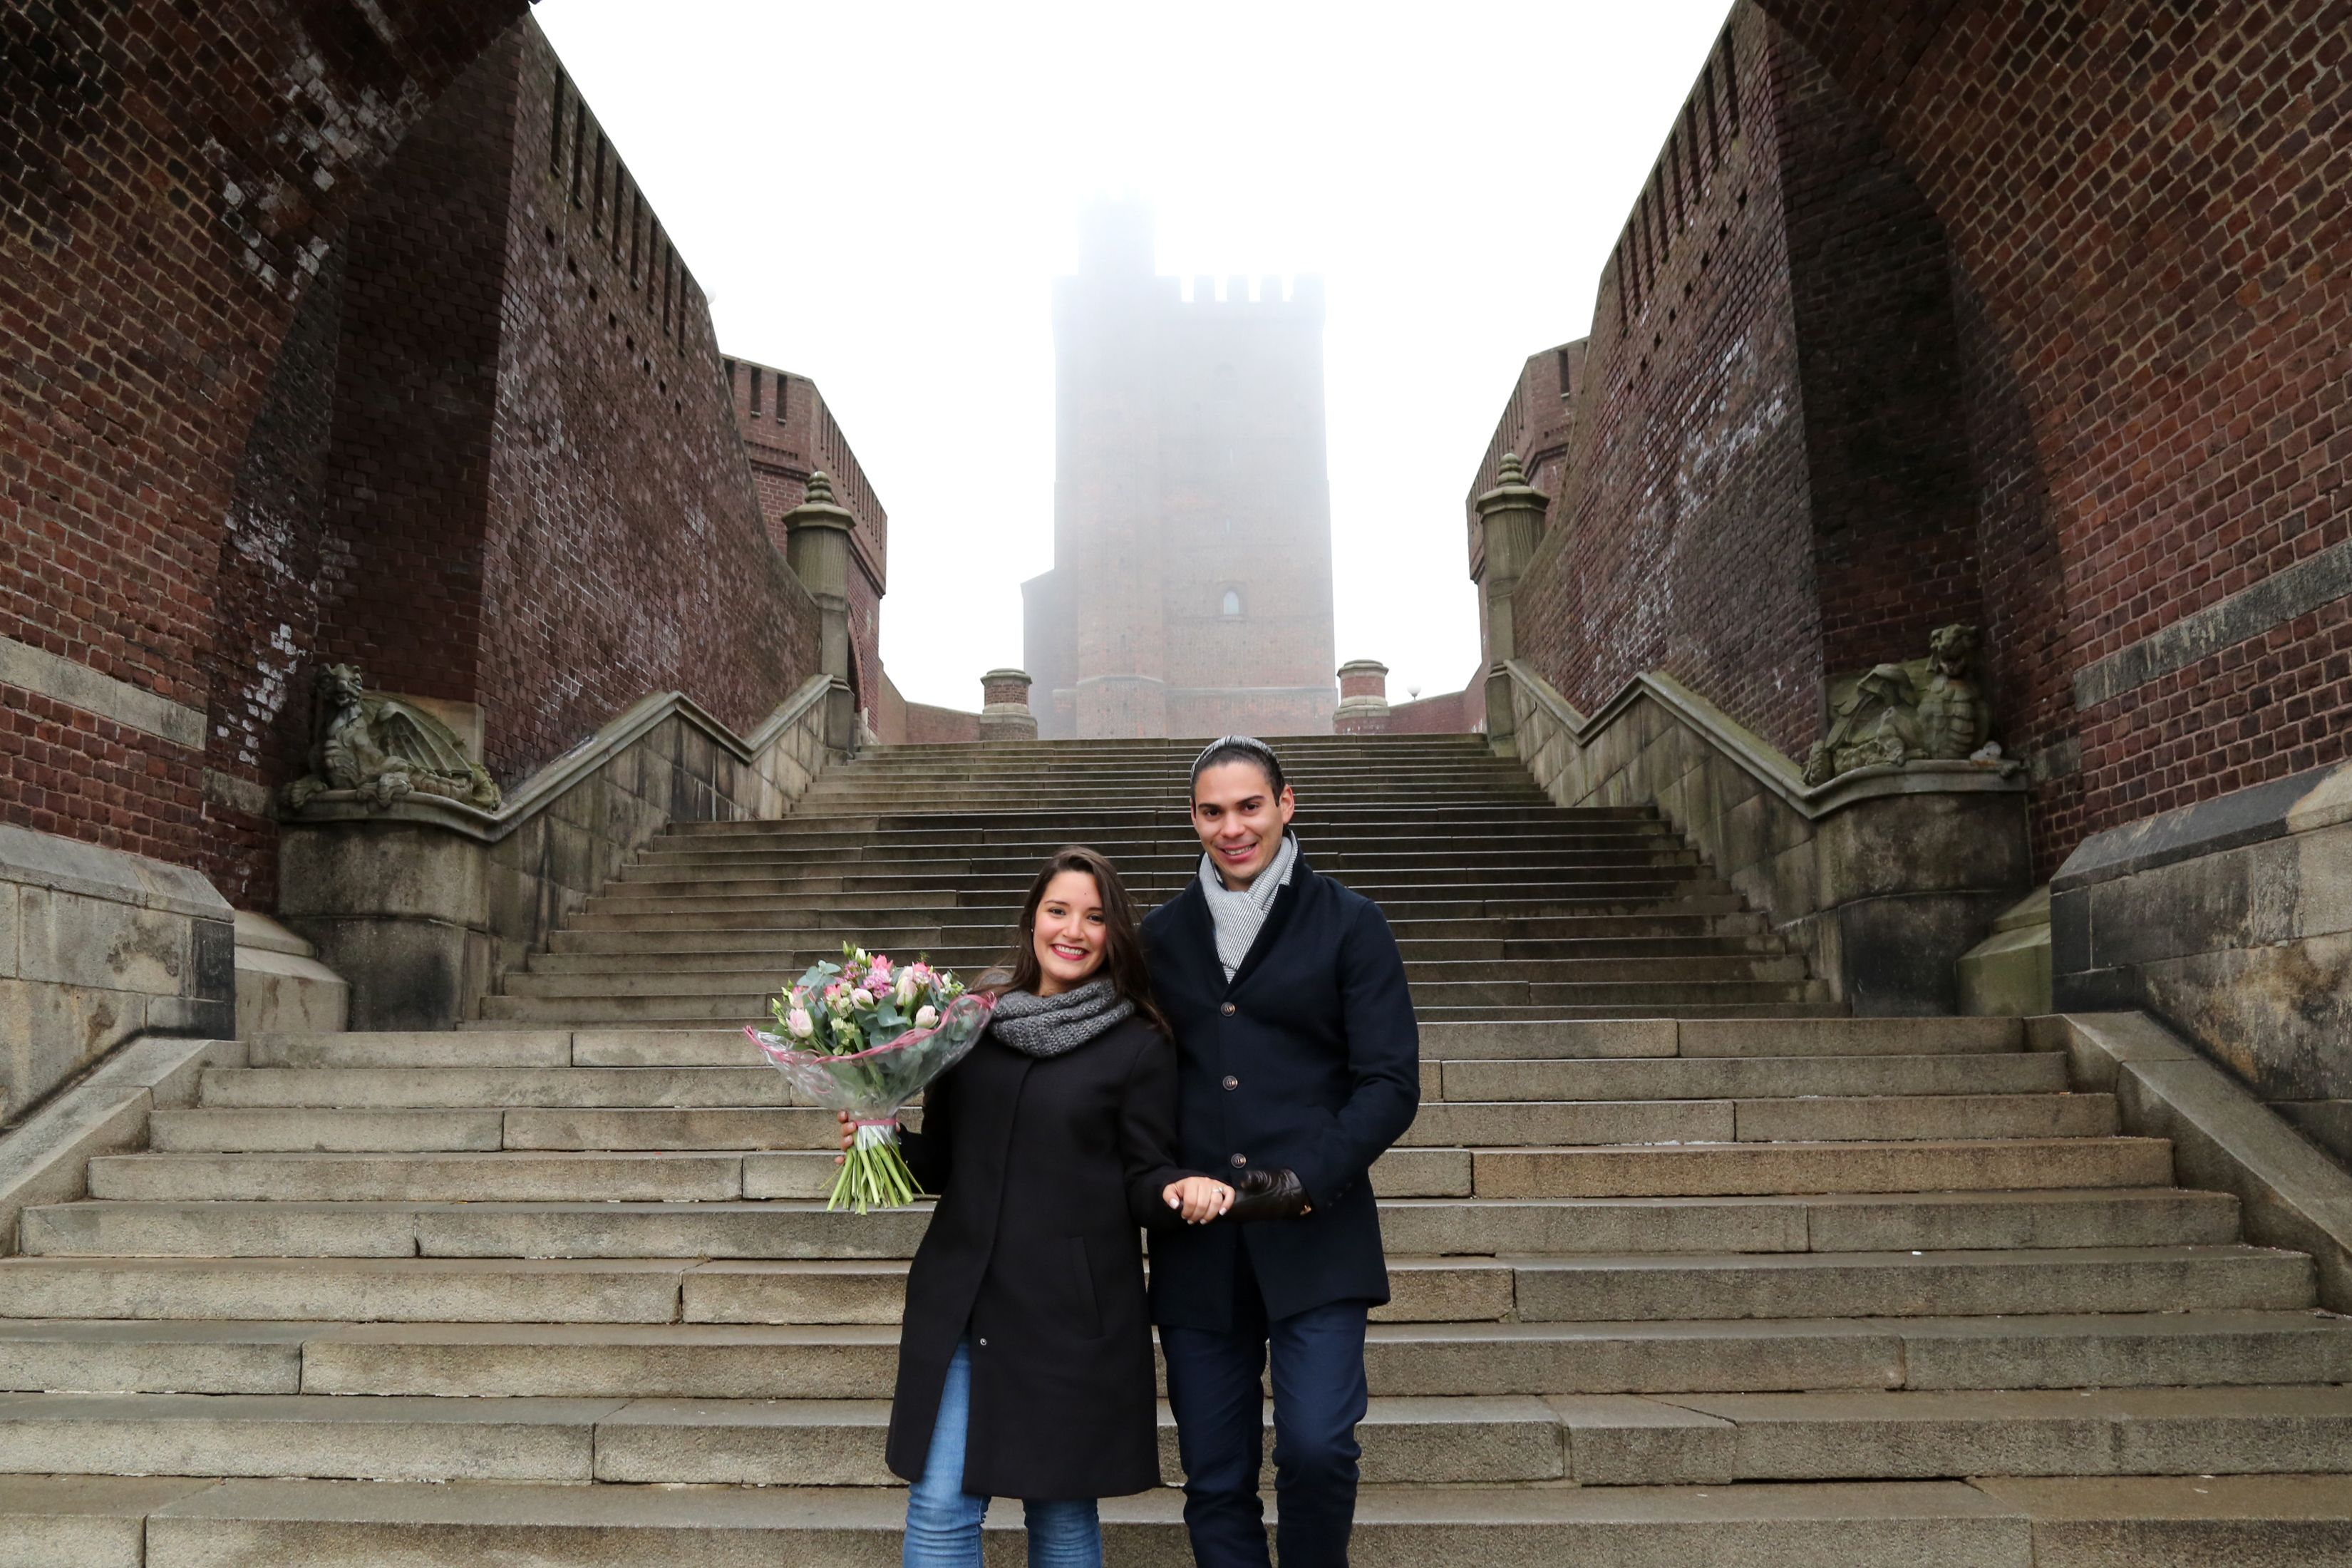 Couple poses for a photo on a foggy day in Copenhagen